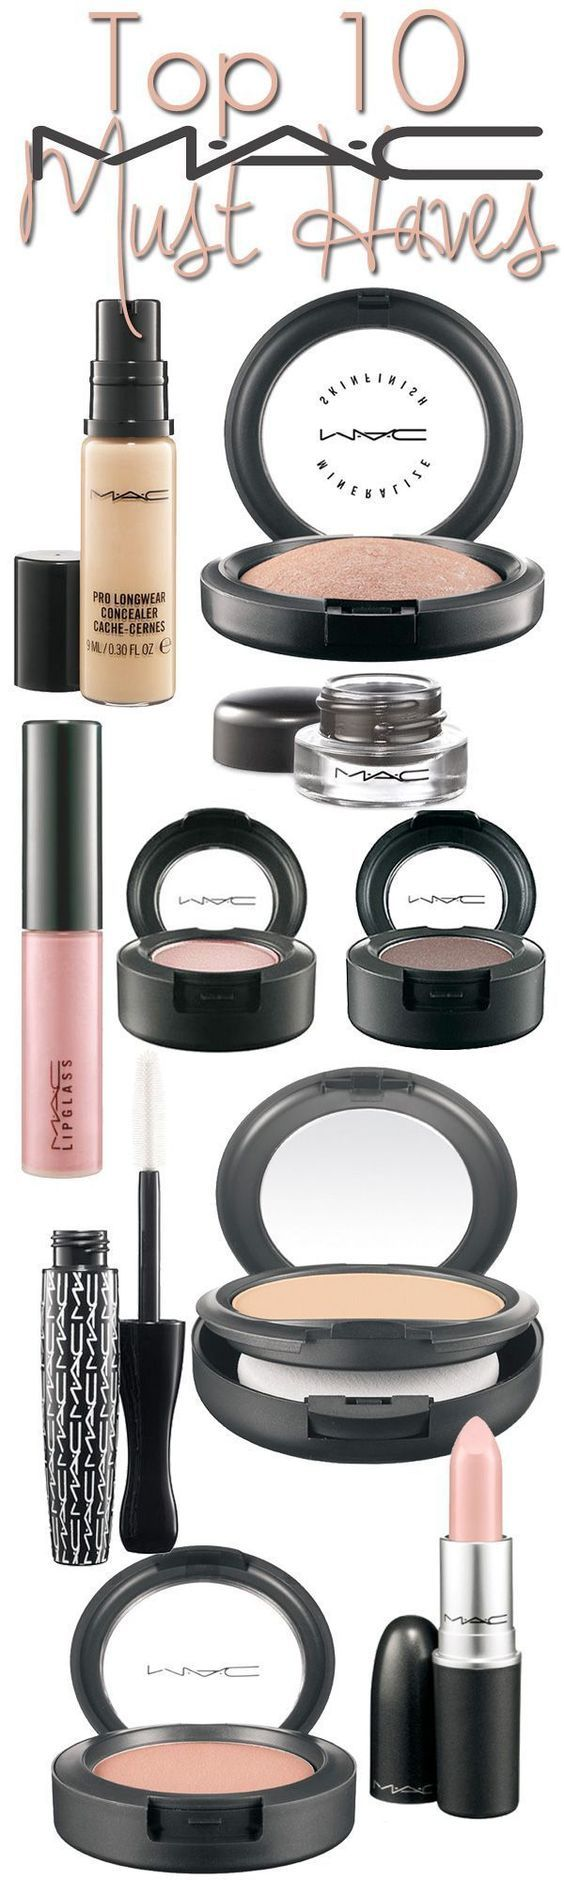 Top 10 MAC Must Haves - The MAC makeup products you need in your makeup collection.